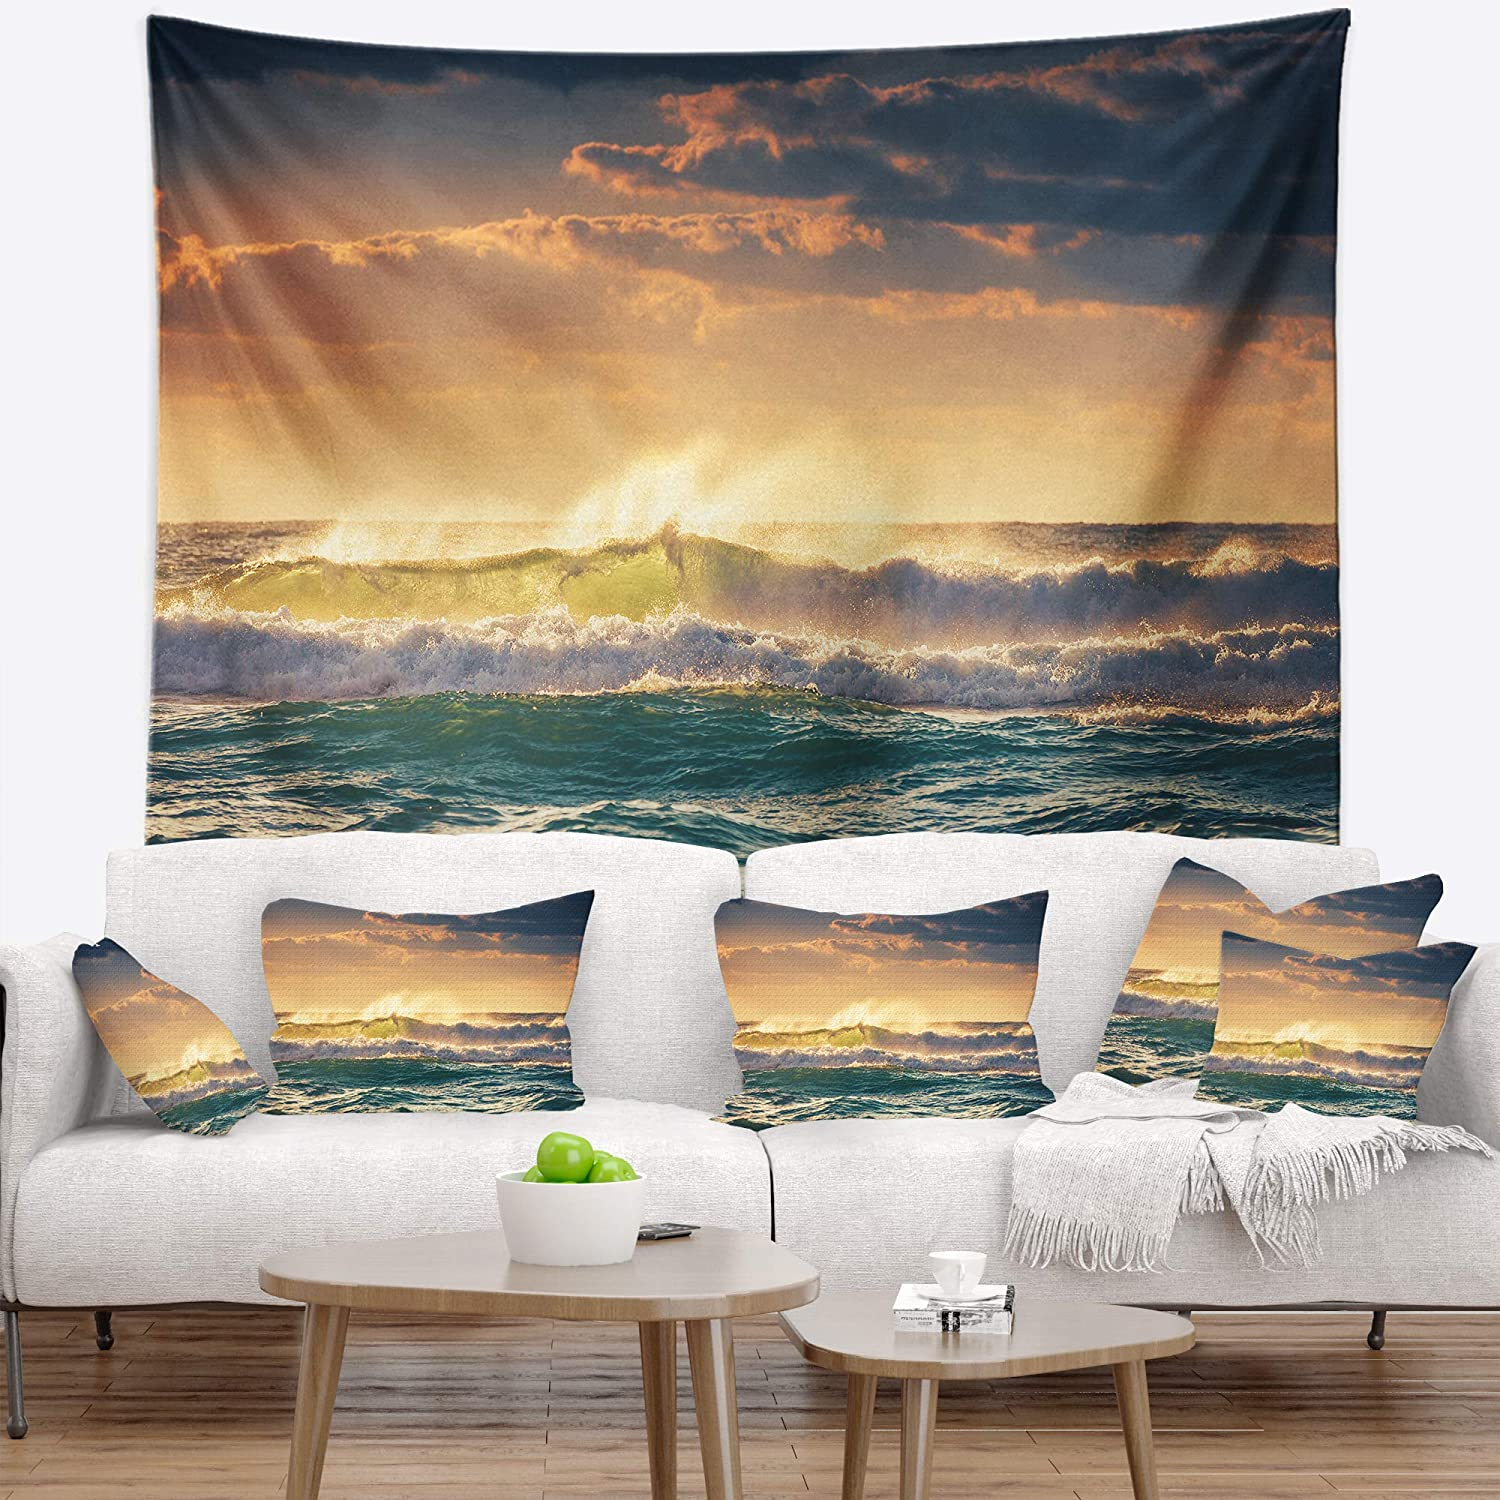 80 in Created On Lightweight Polyester Fabric Designart TAP10570-80-68  Sunrise and Shining Waves in Ocean Seascape Blanket D/écor Art for Home and Office Wall Tapestry x Large x 68 in